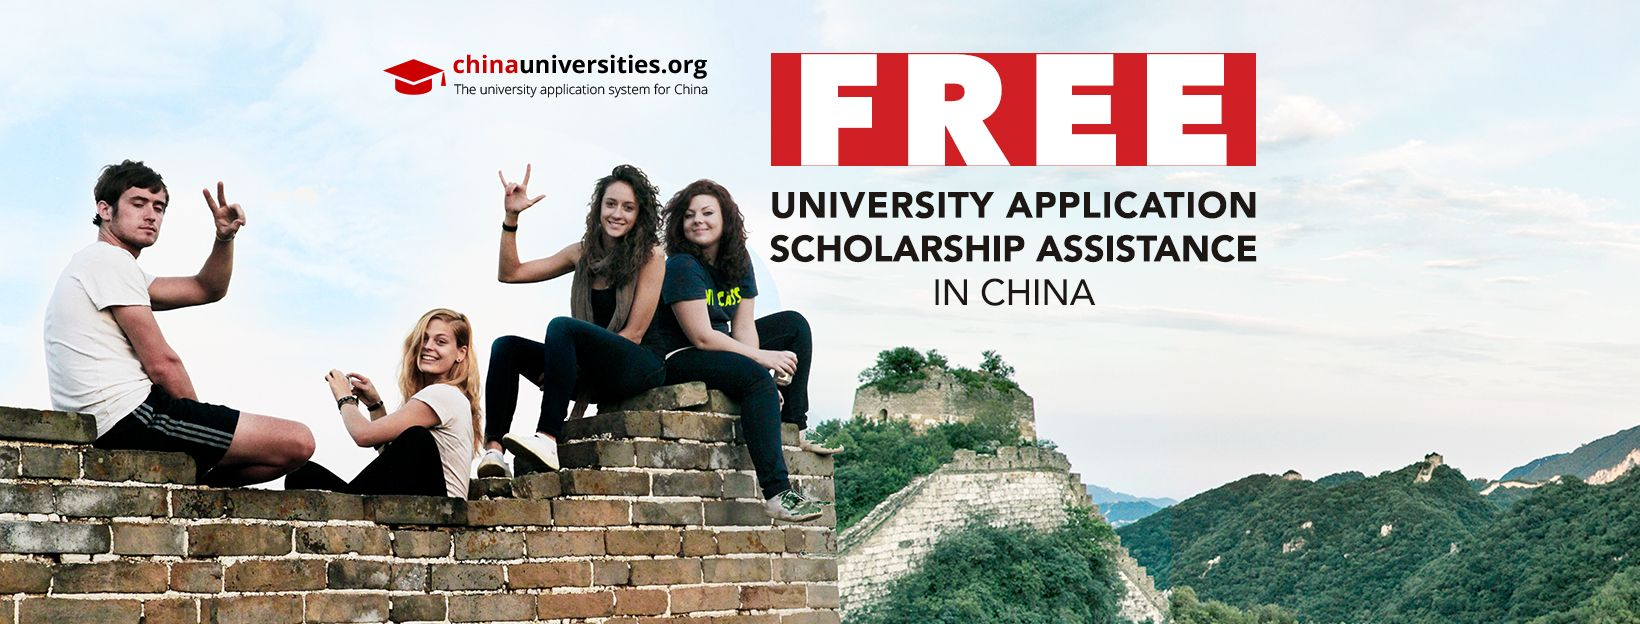 Free Application and Scholarship Assistance in China - ChinaUniversities.org